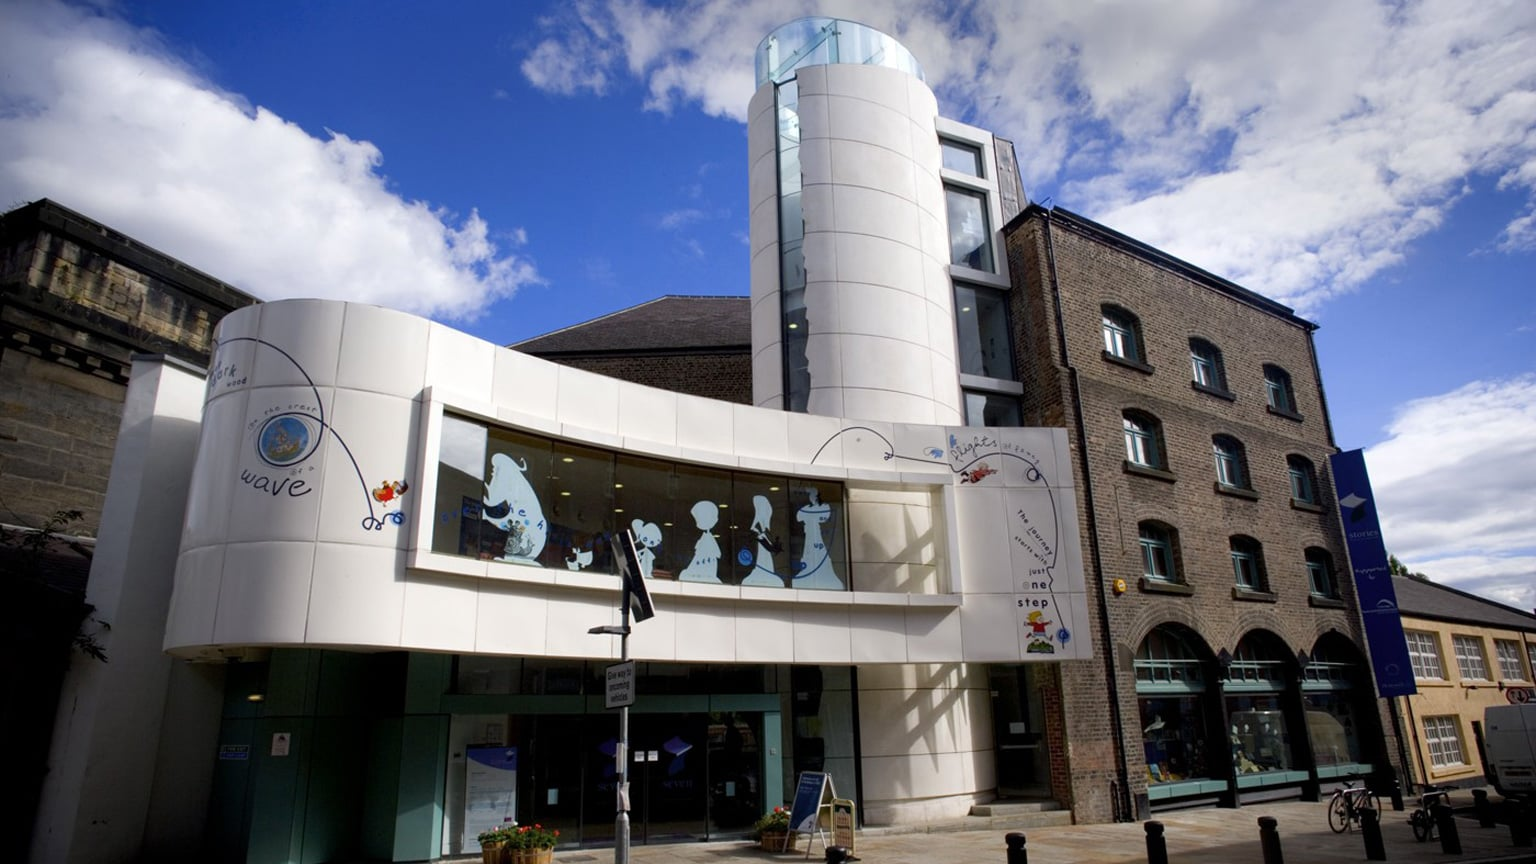 4. Seven Stories, Tyne and Wear - Free entry with National Art Pass